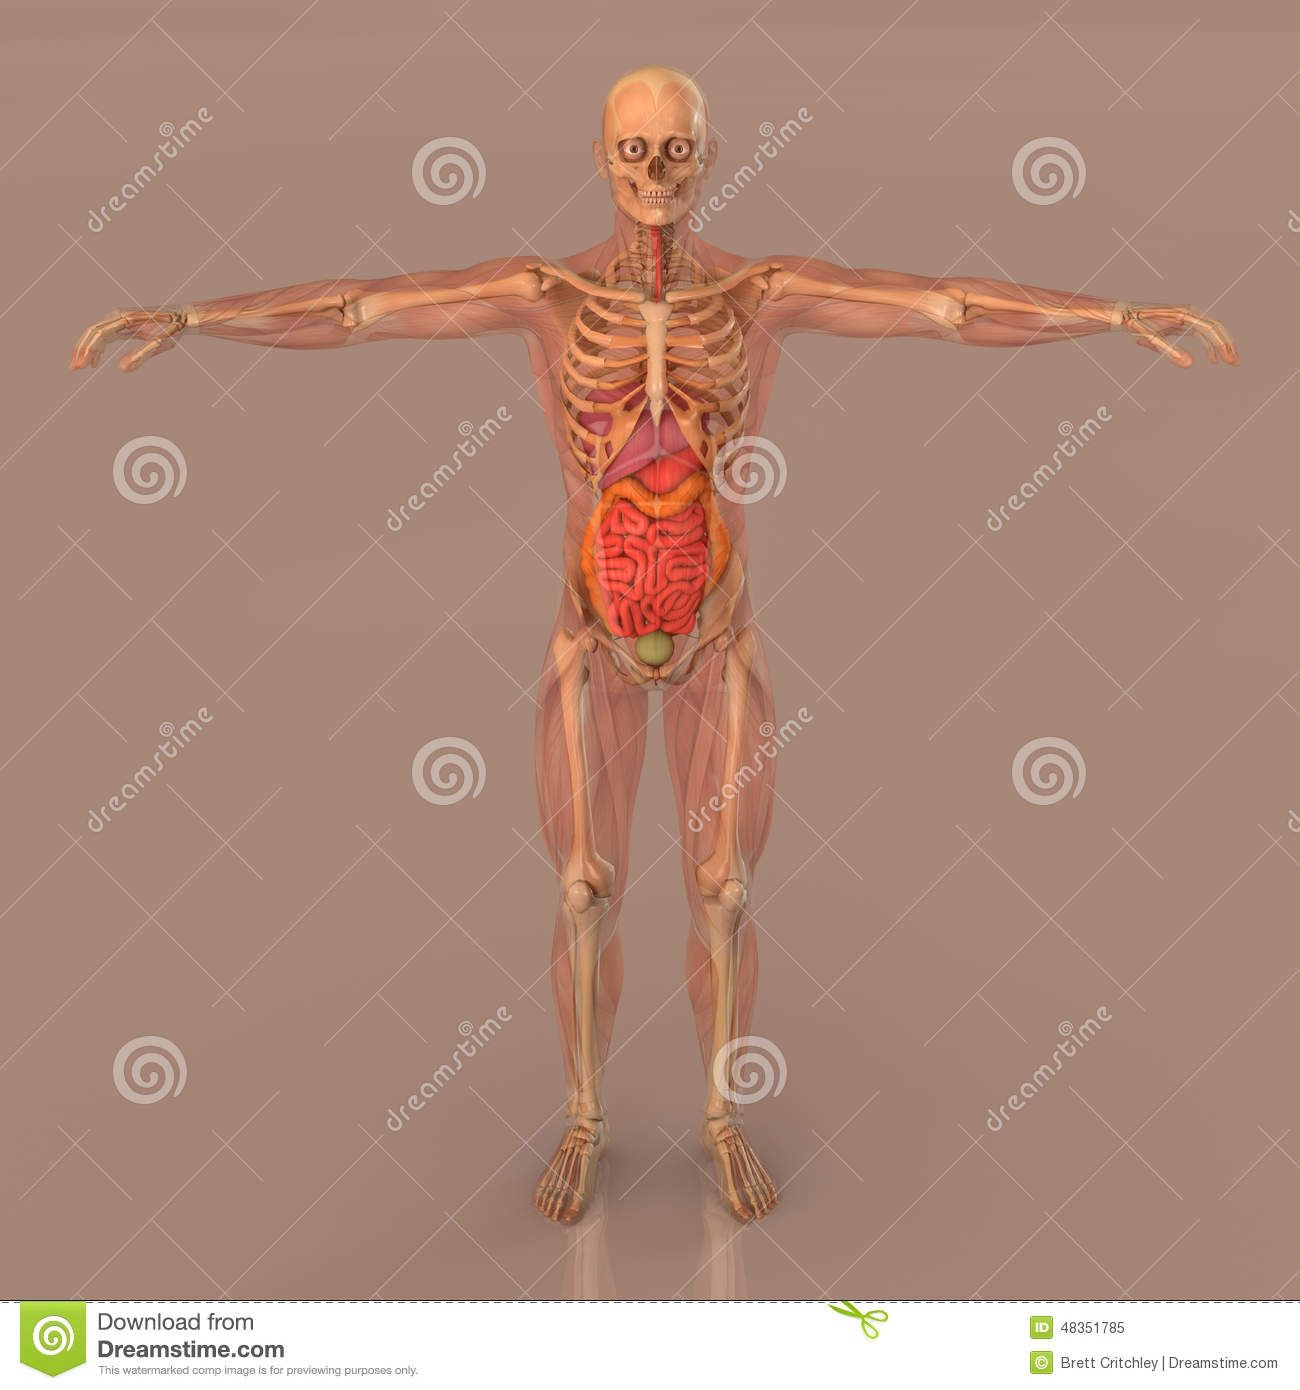 Human anatomy showing full standing opaque body, skeleton and ...